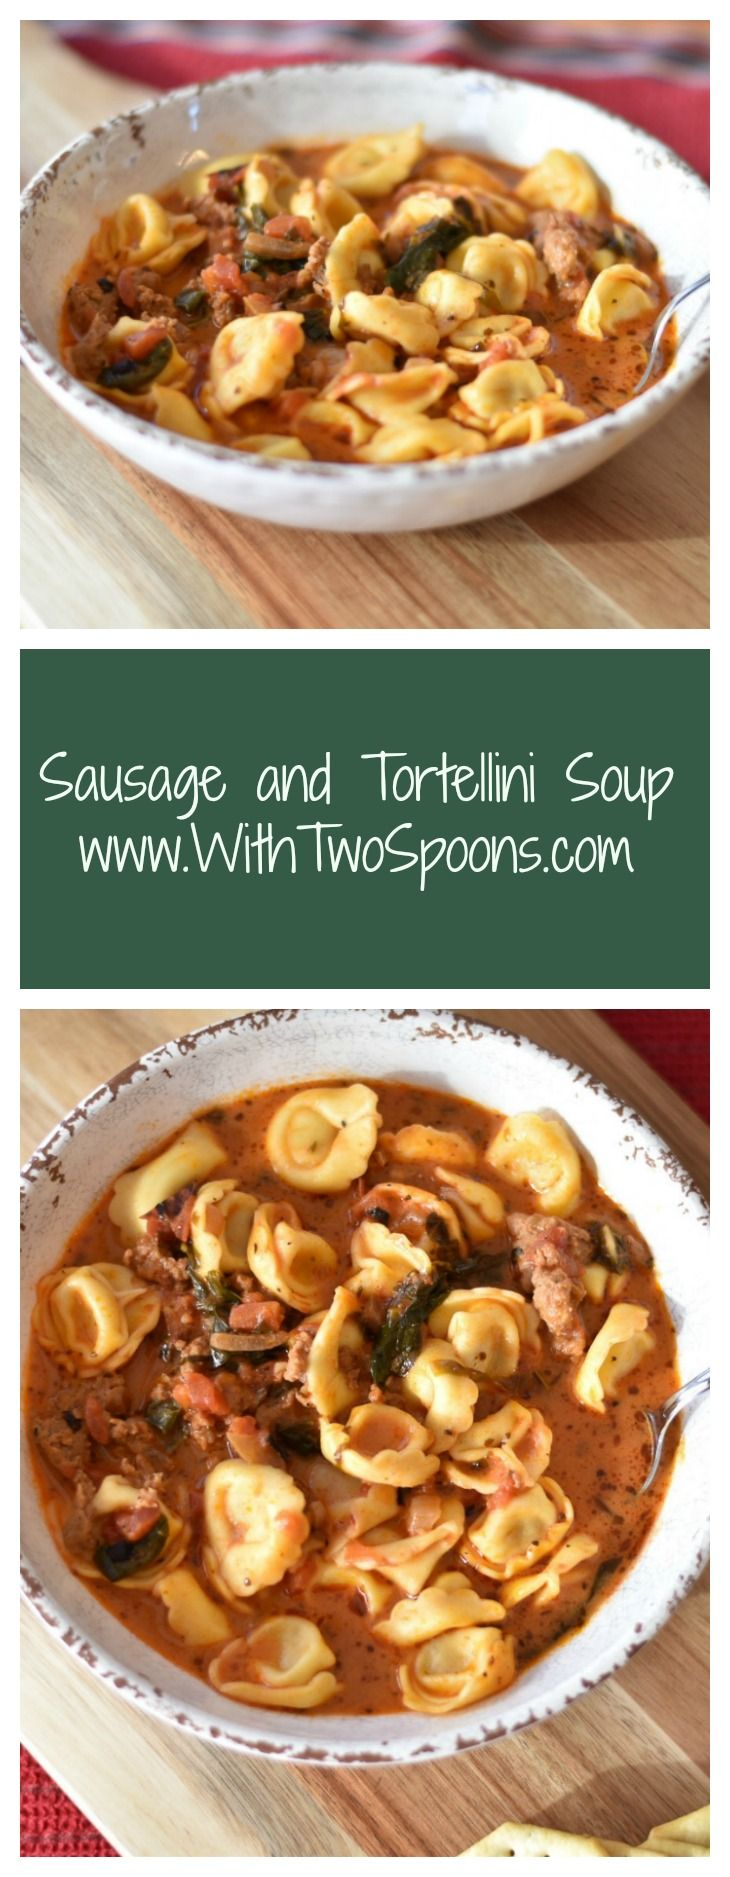 Sausage and Tortellini Soup-perfect for any meal.  And PS-your leftovers will make everyone jealous!